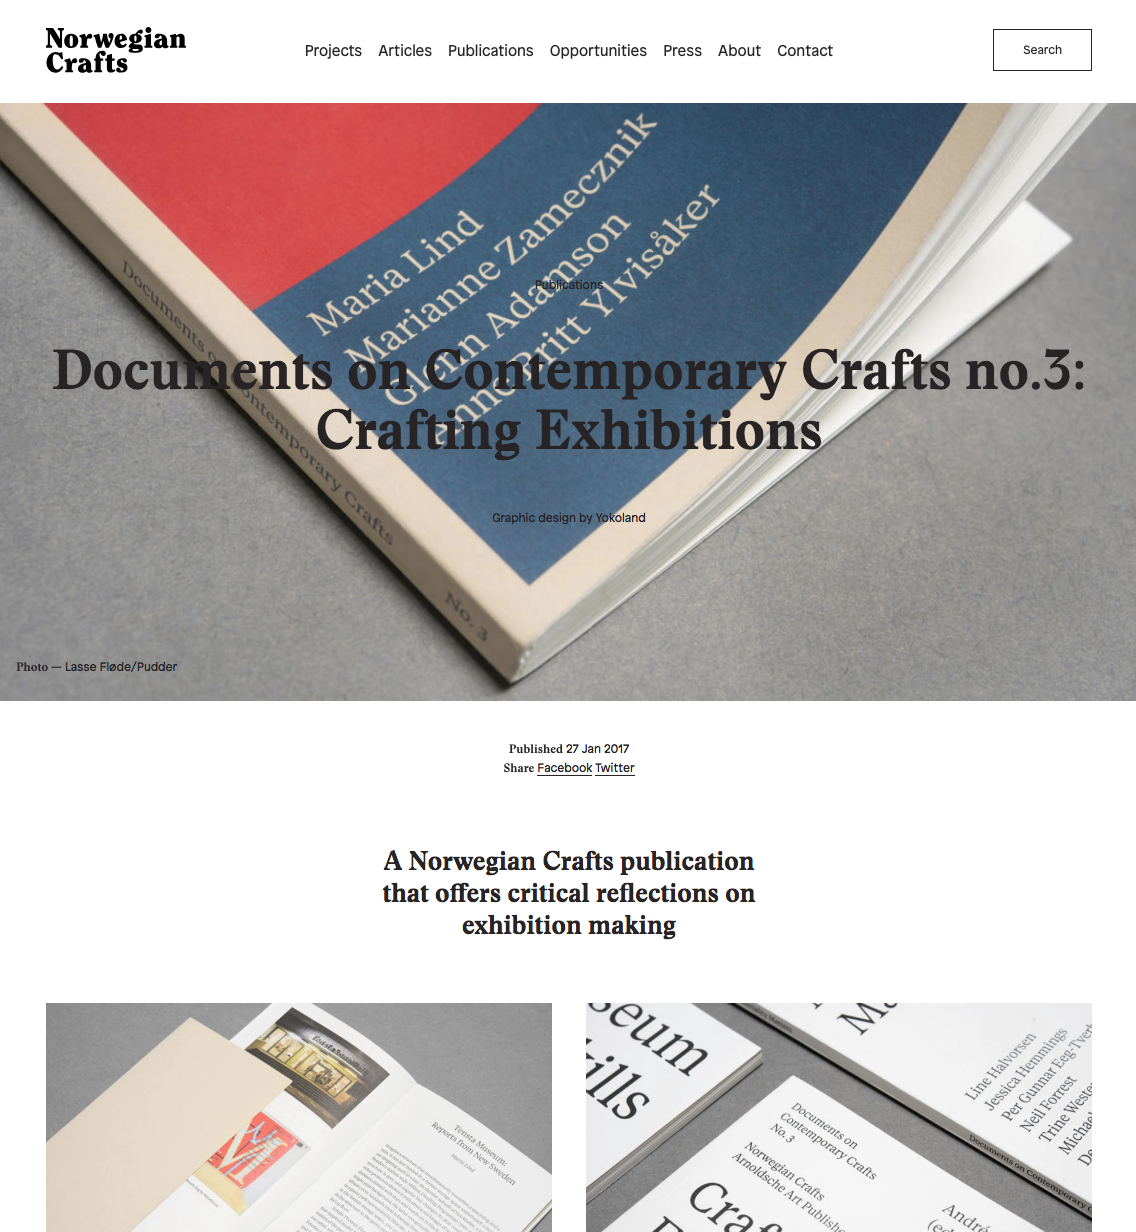 Norwegian Craft: Documents on Contemporary Crafts no.3: Crafting Exhibitions